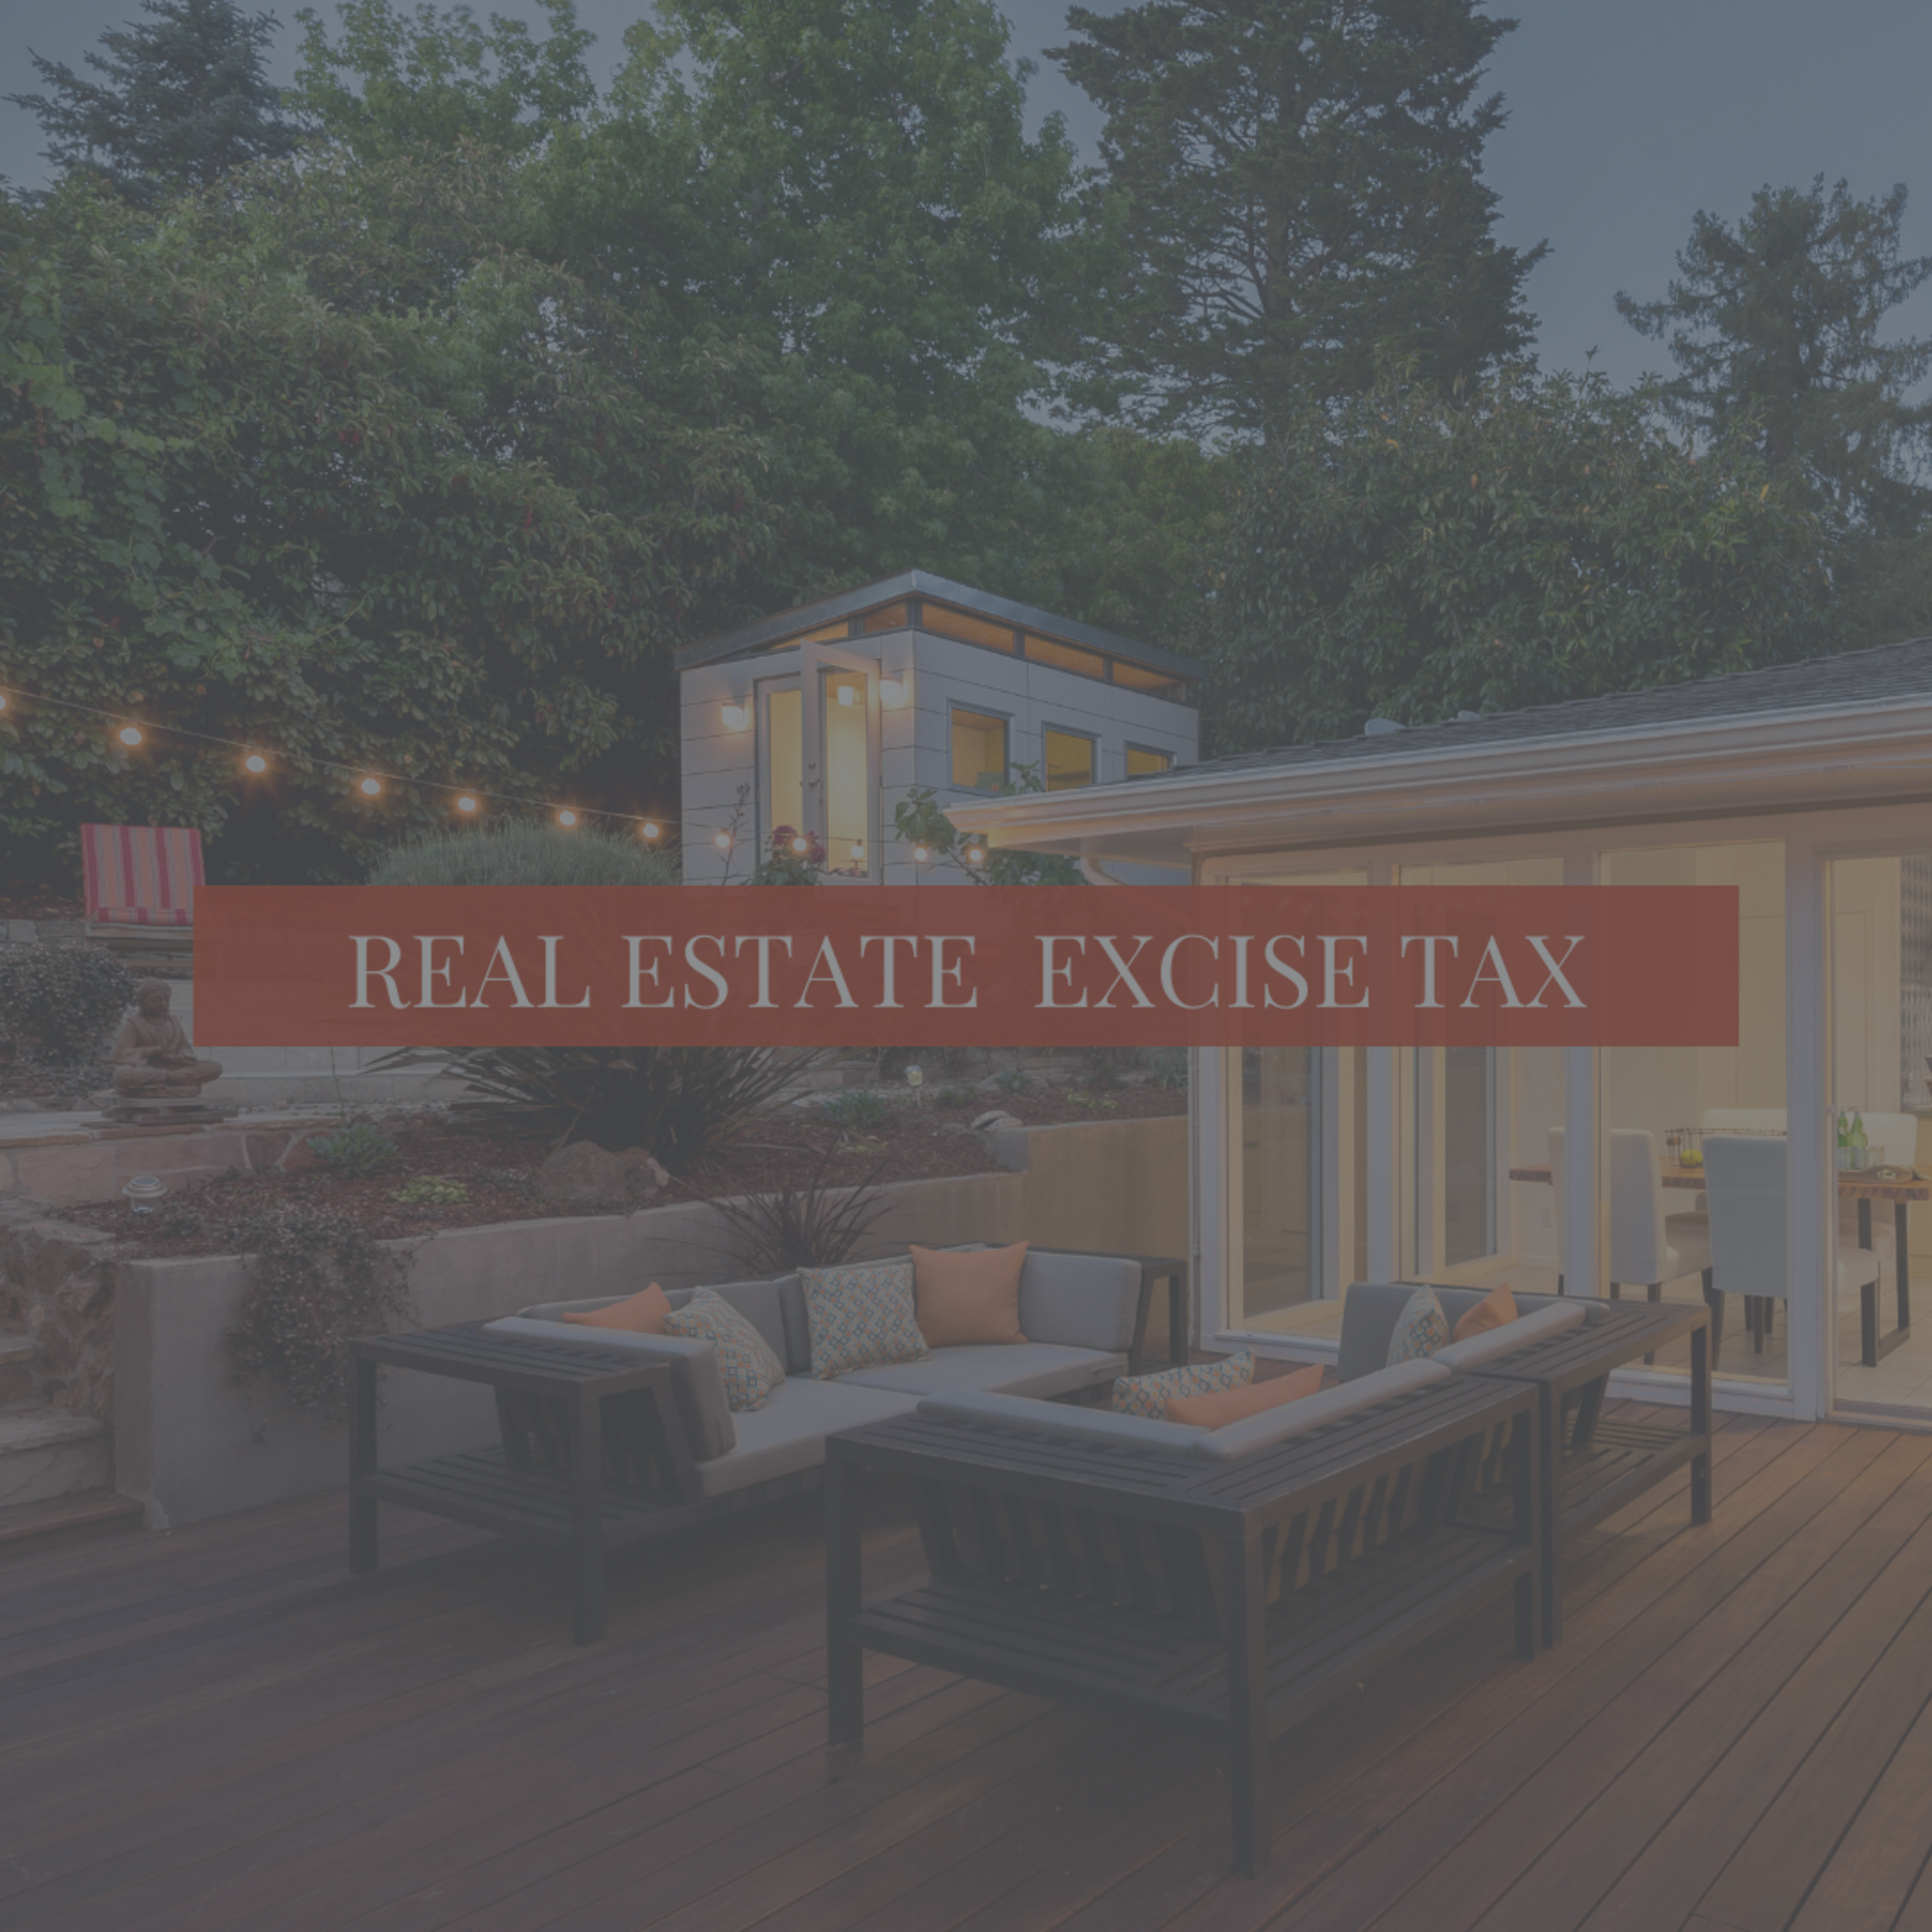 New Tiered Tax: Real Estate Excise Tax